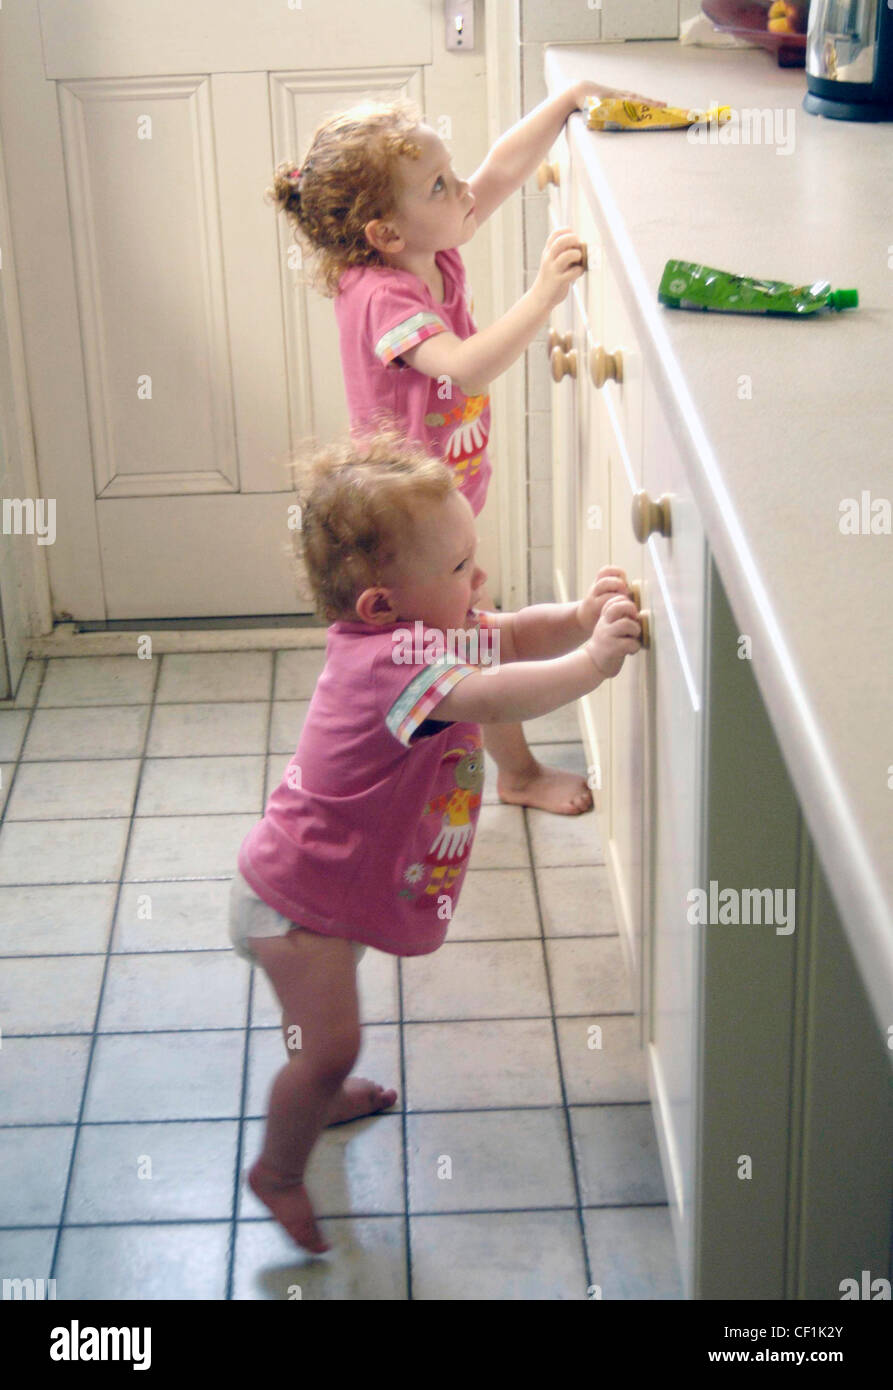 Female children with curly red hair, wearing matching pink t shirts, standing in the kitchen - Stock Image